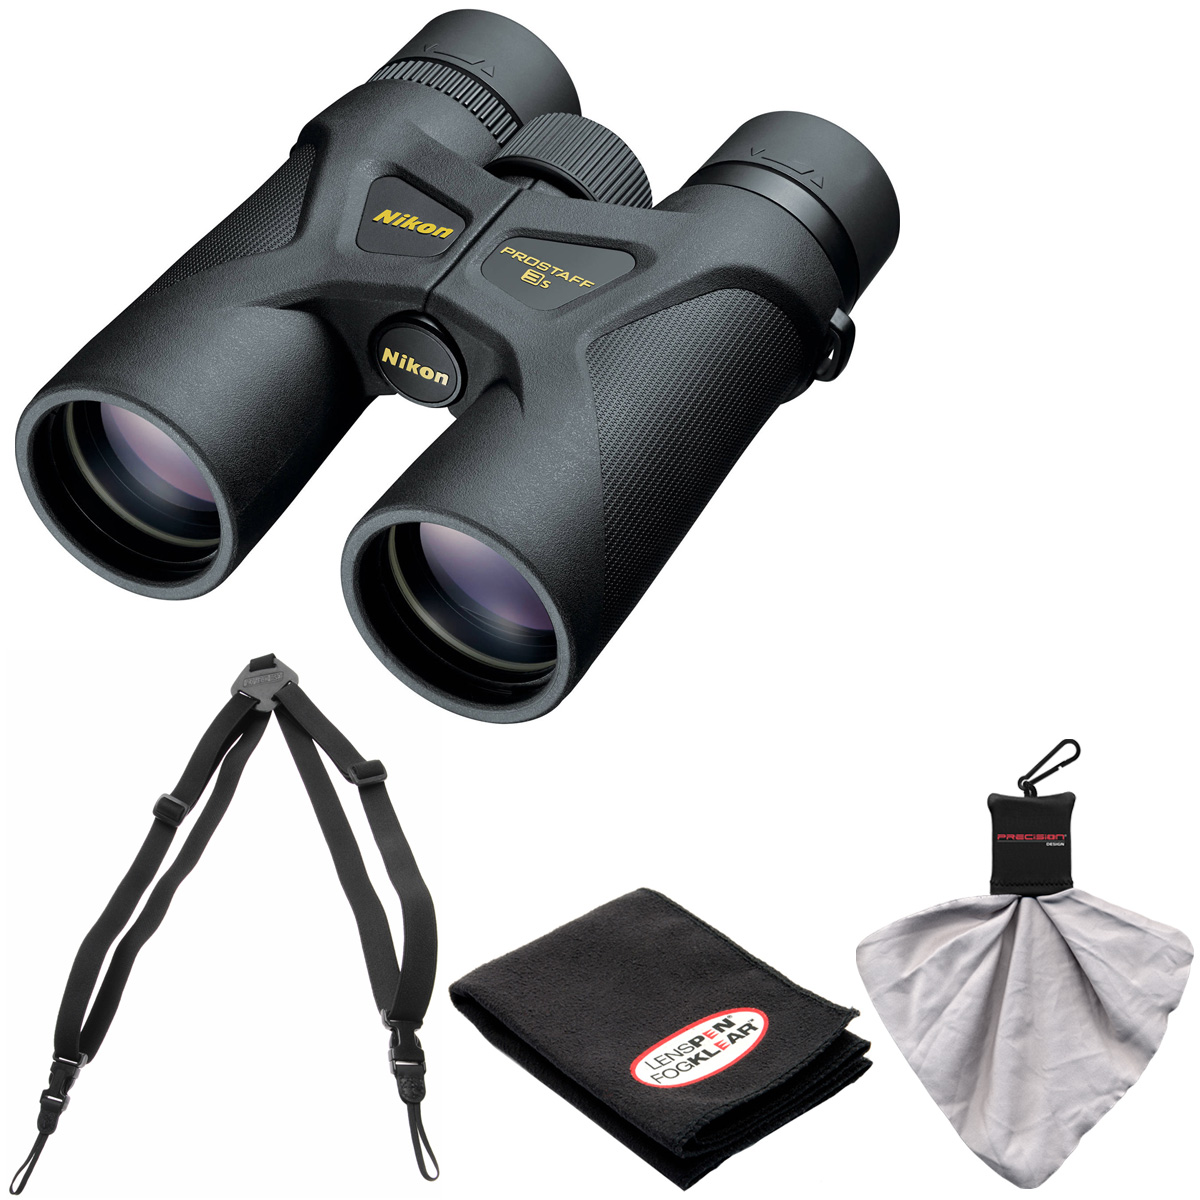 Nikon Prostaff 3S 8x42 Waterproof/Fogproof Binoculars with Case + Easy Carry Harness + Cleaning Cloth Kit